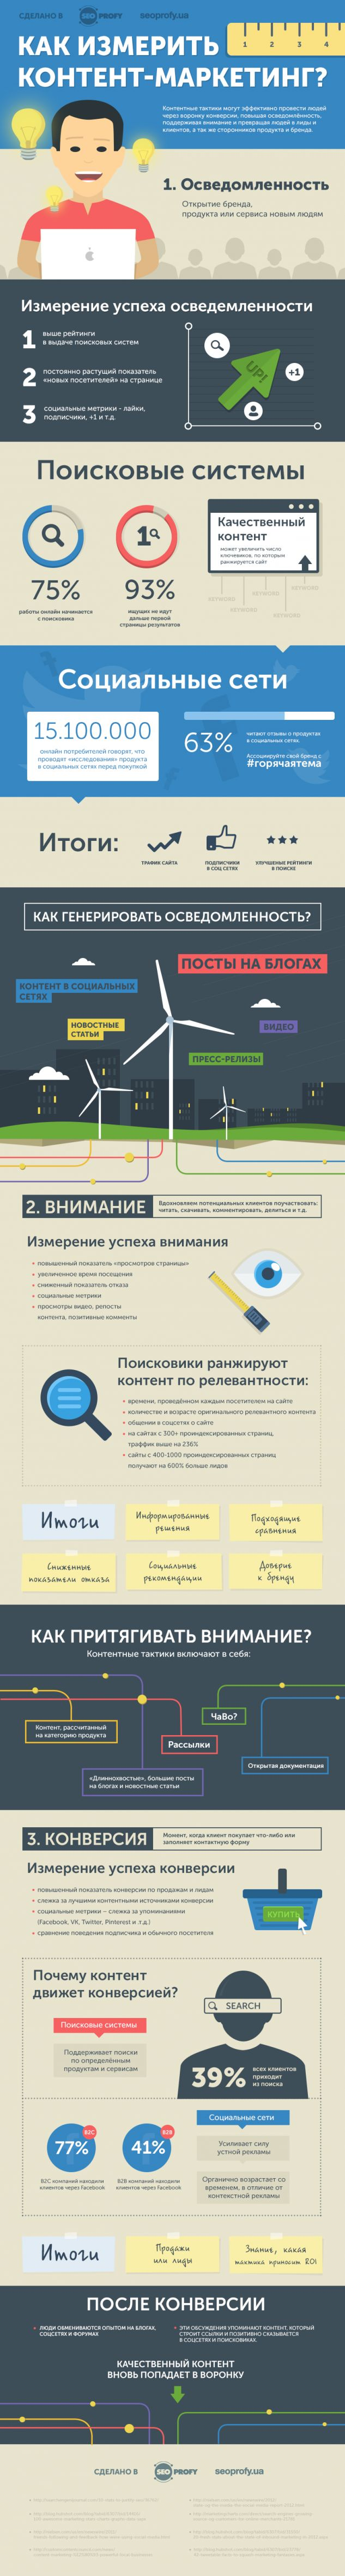 14-primerov-infografiki-po-kontent-marketingu_8